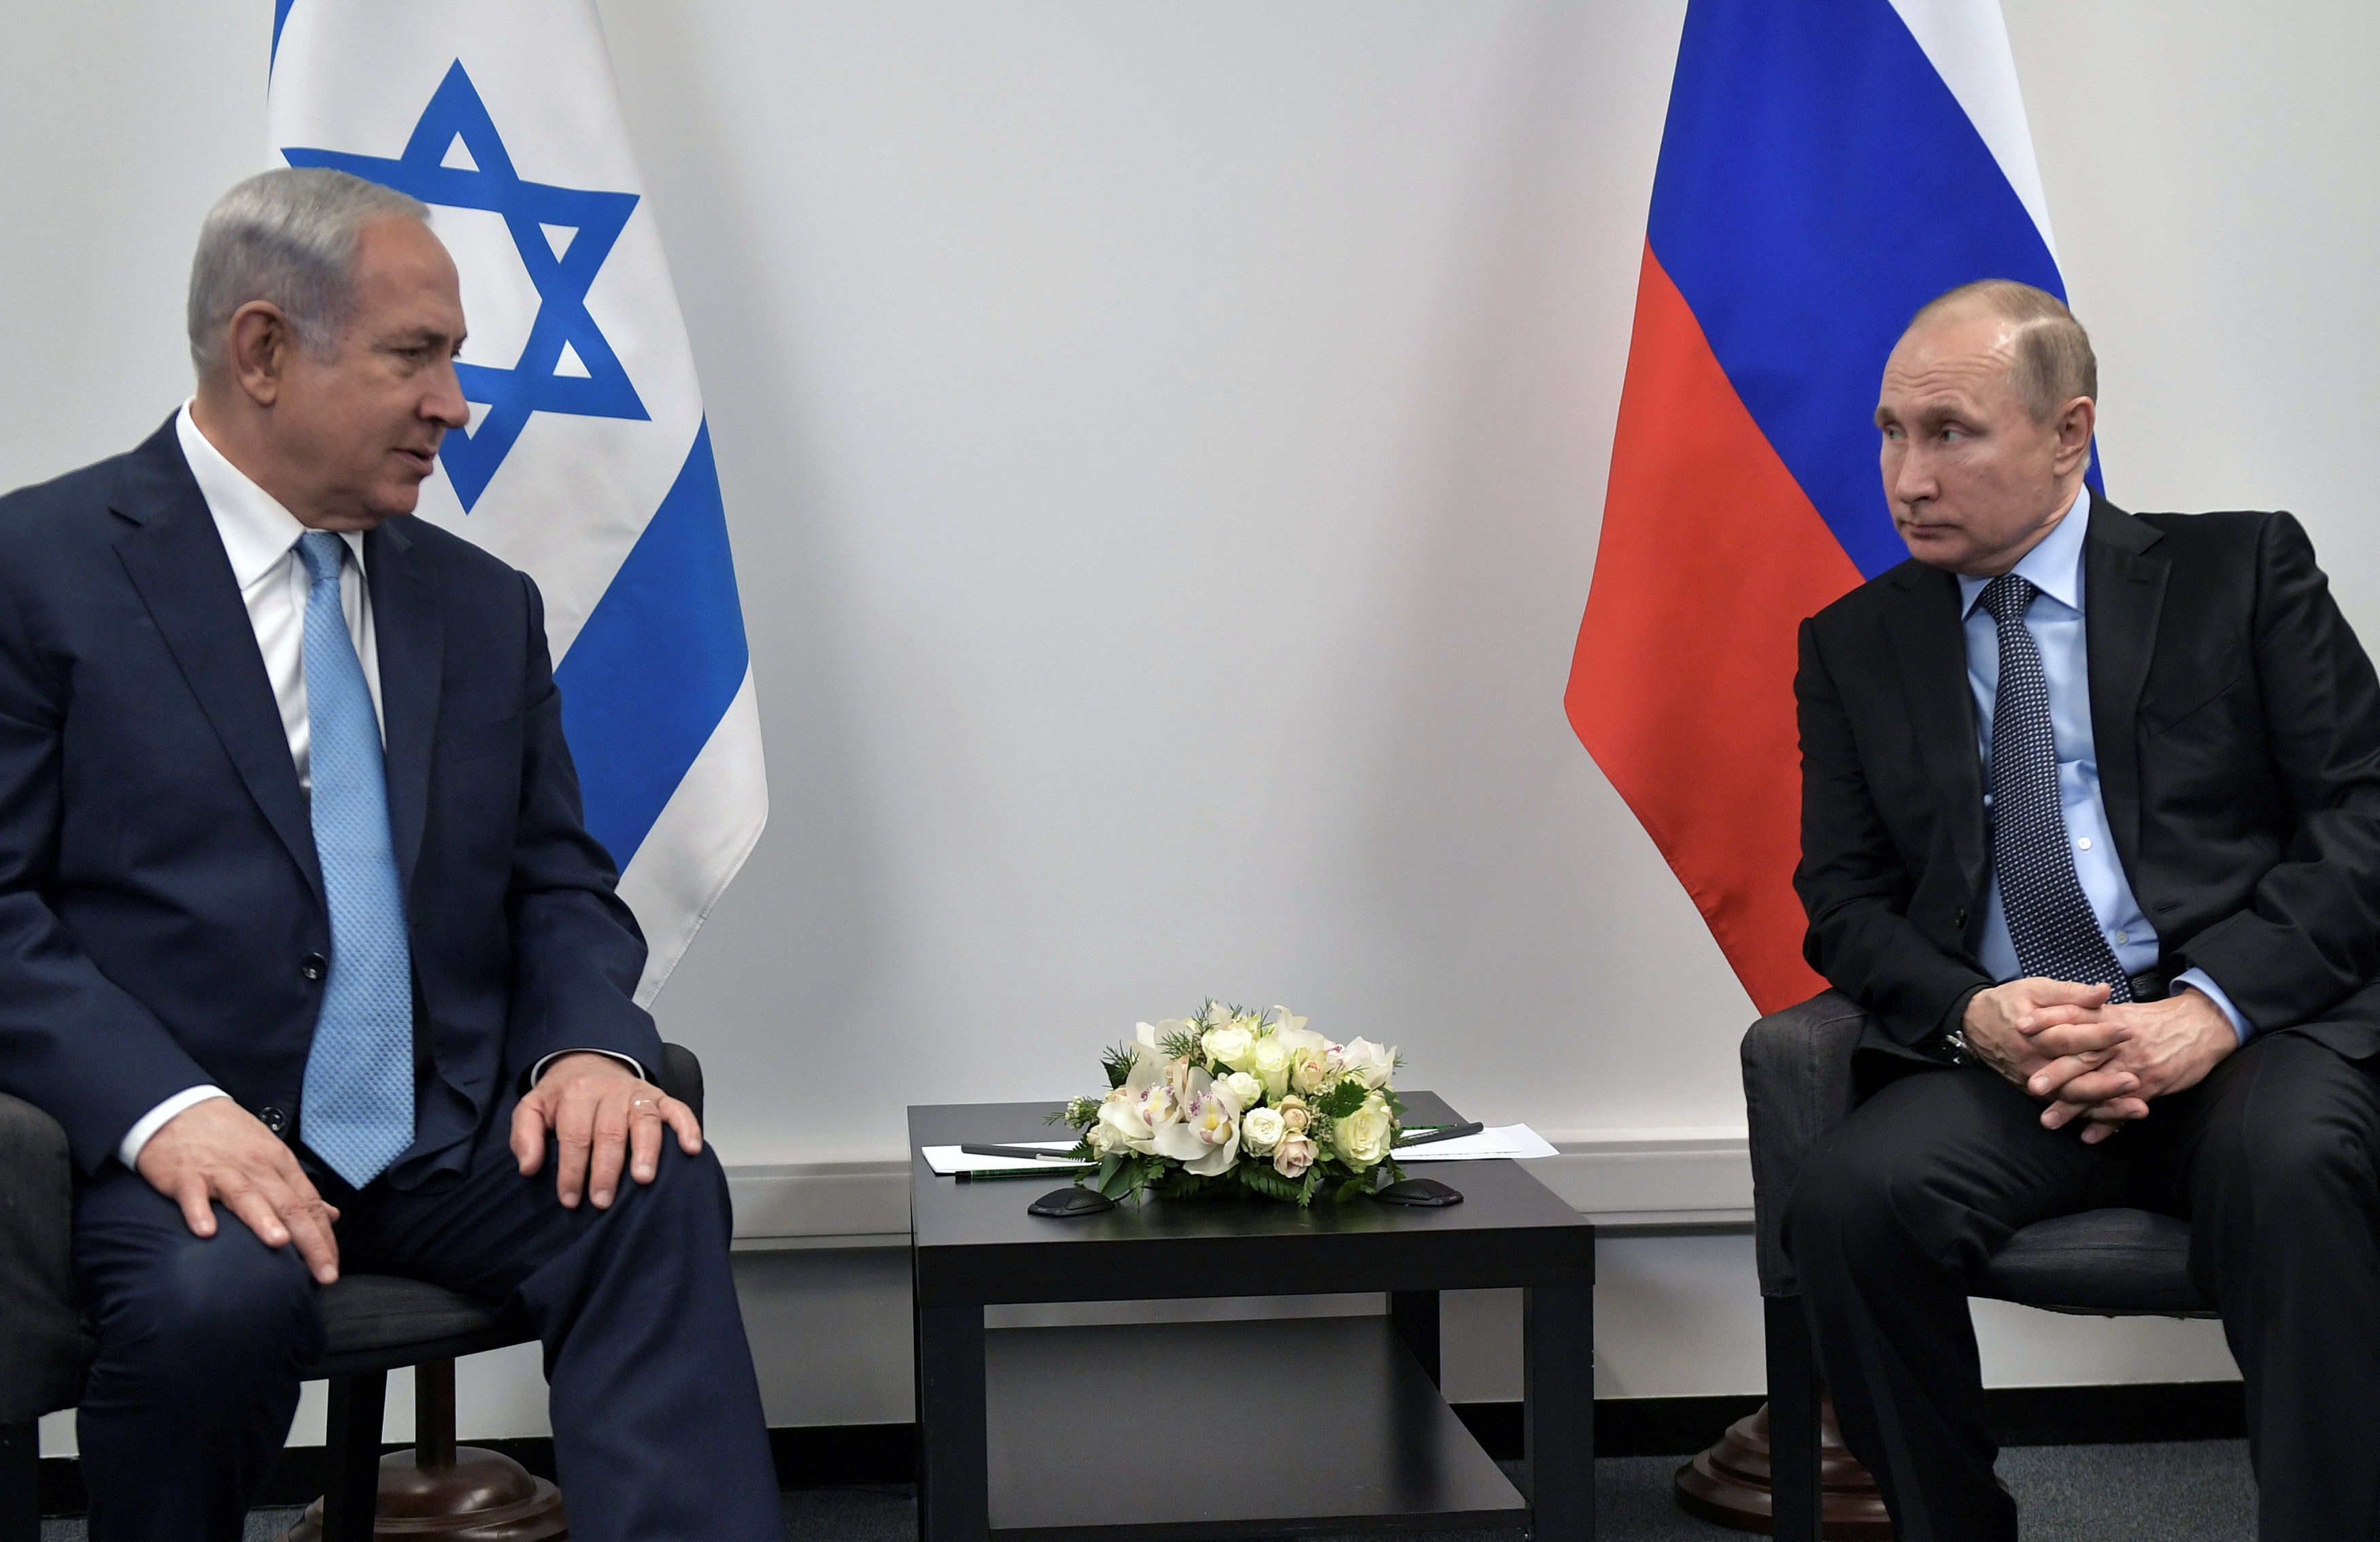 Russian President Vladimir Putin and Israeli Prime Minister Benjamin Netanyahu attend a meeting at the Jewish Museum and Tolerance Centre in Moscow, Russia January 29, 2018.